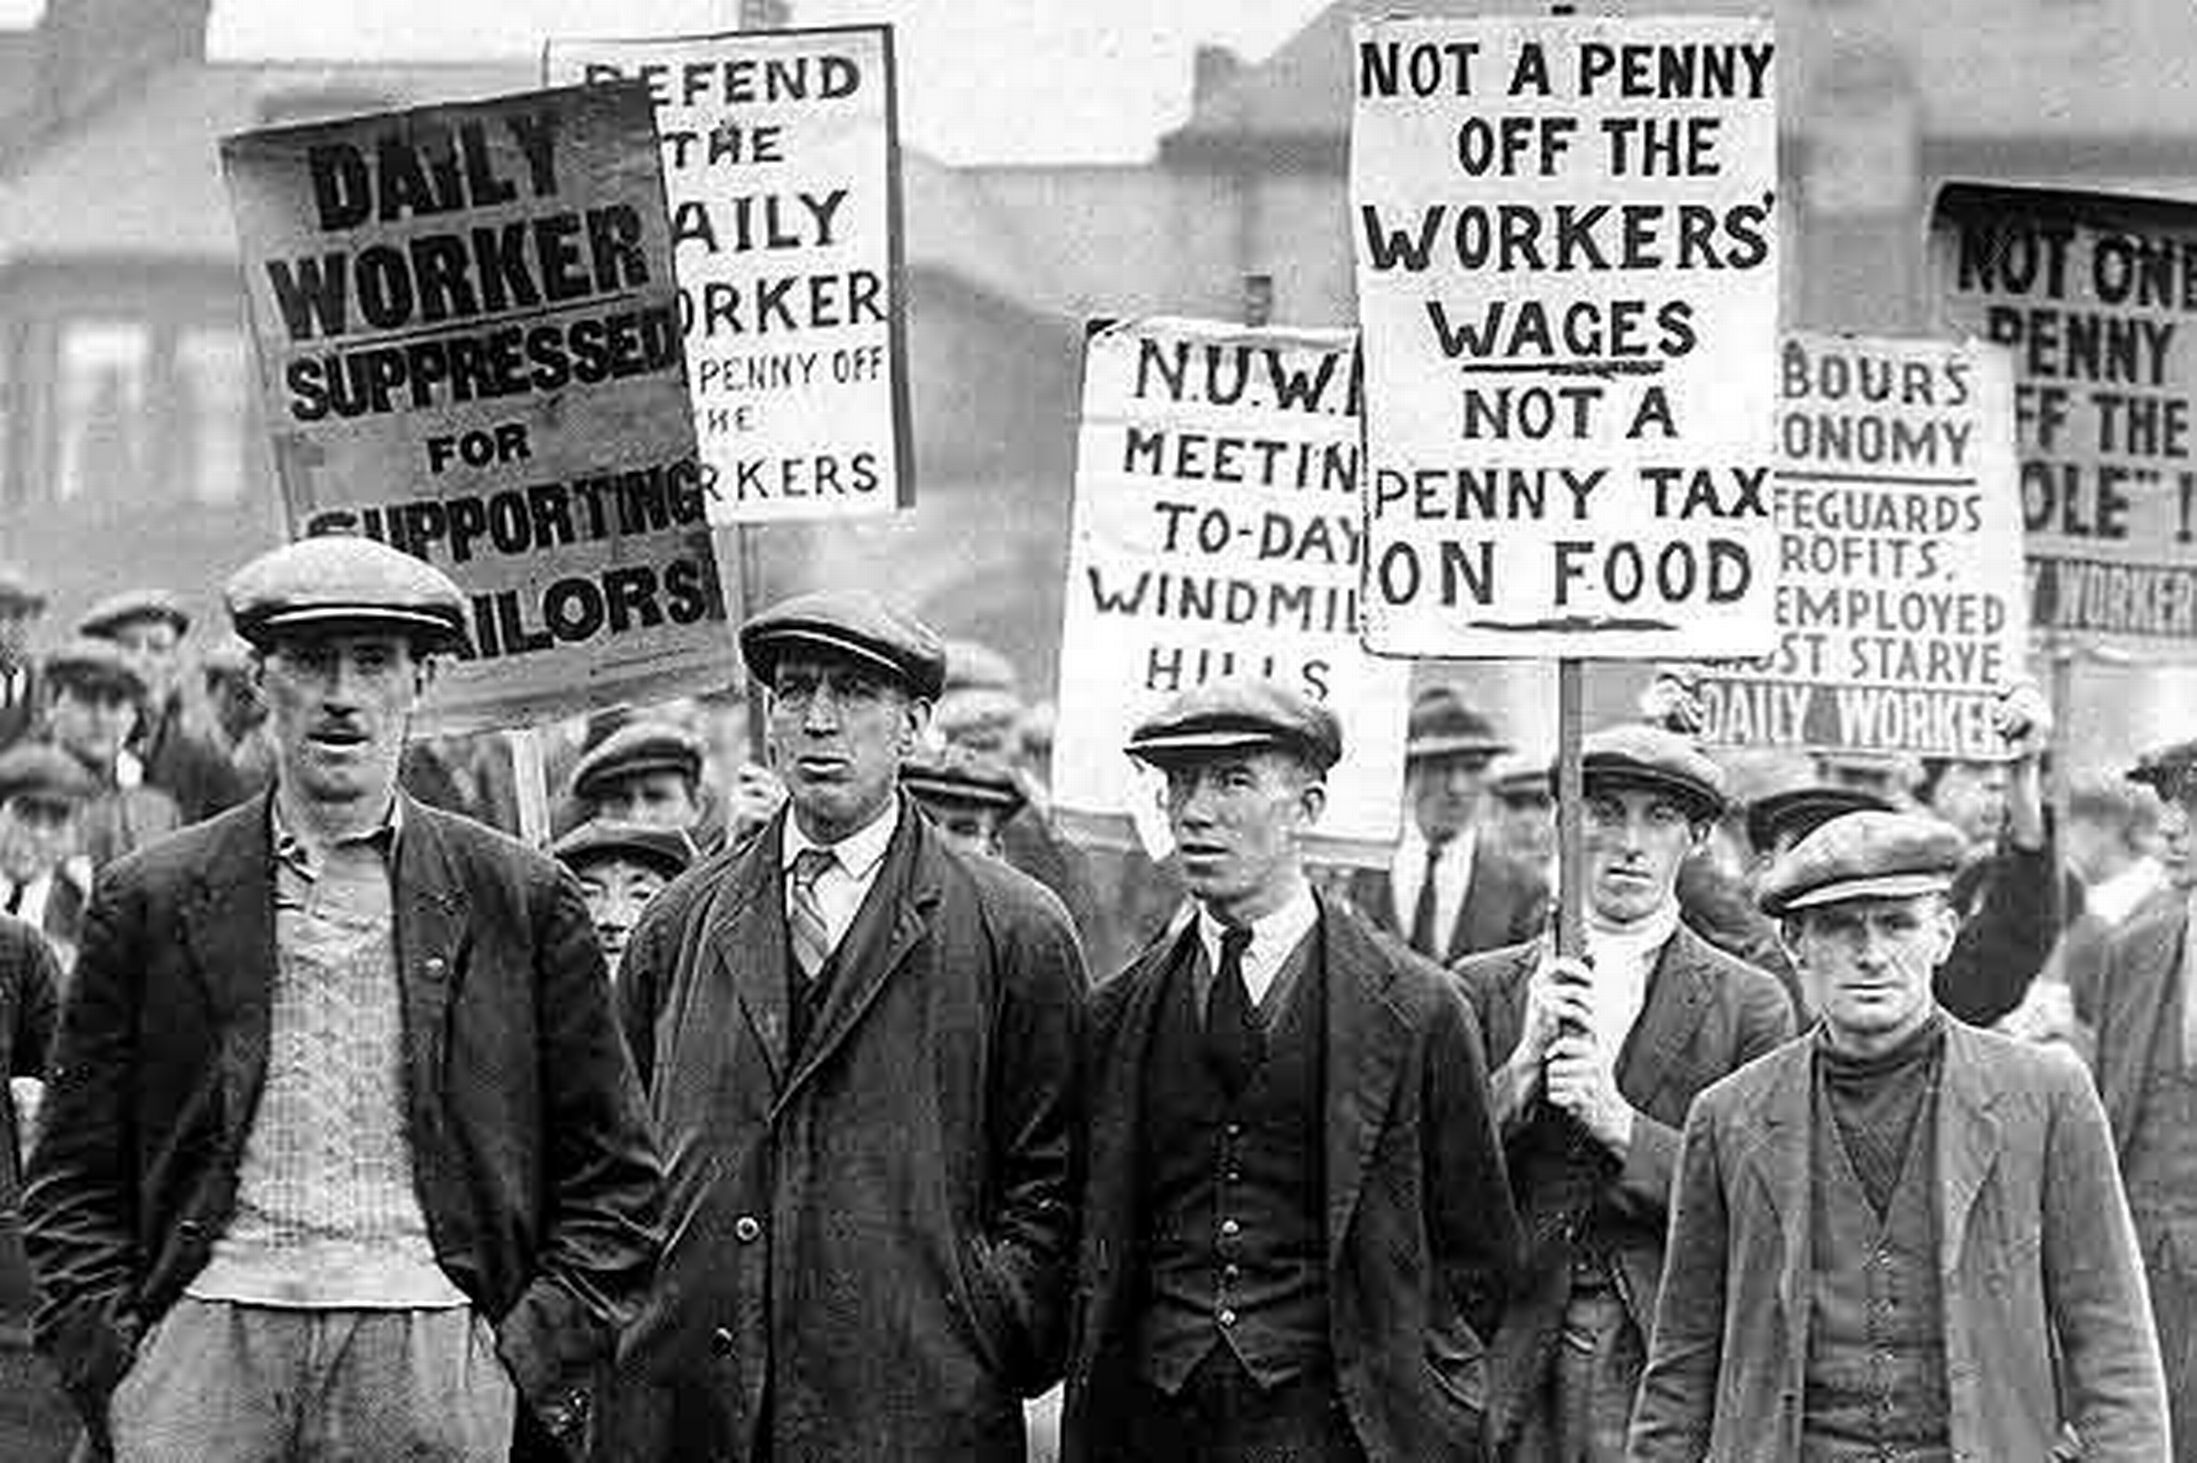 May 4 – The United Kingdom general strike begins at midnight, in support of the coal strike.